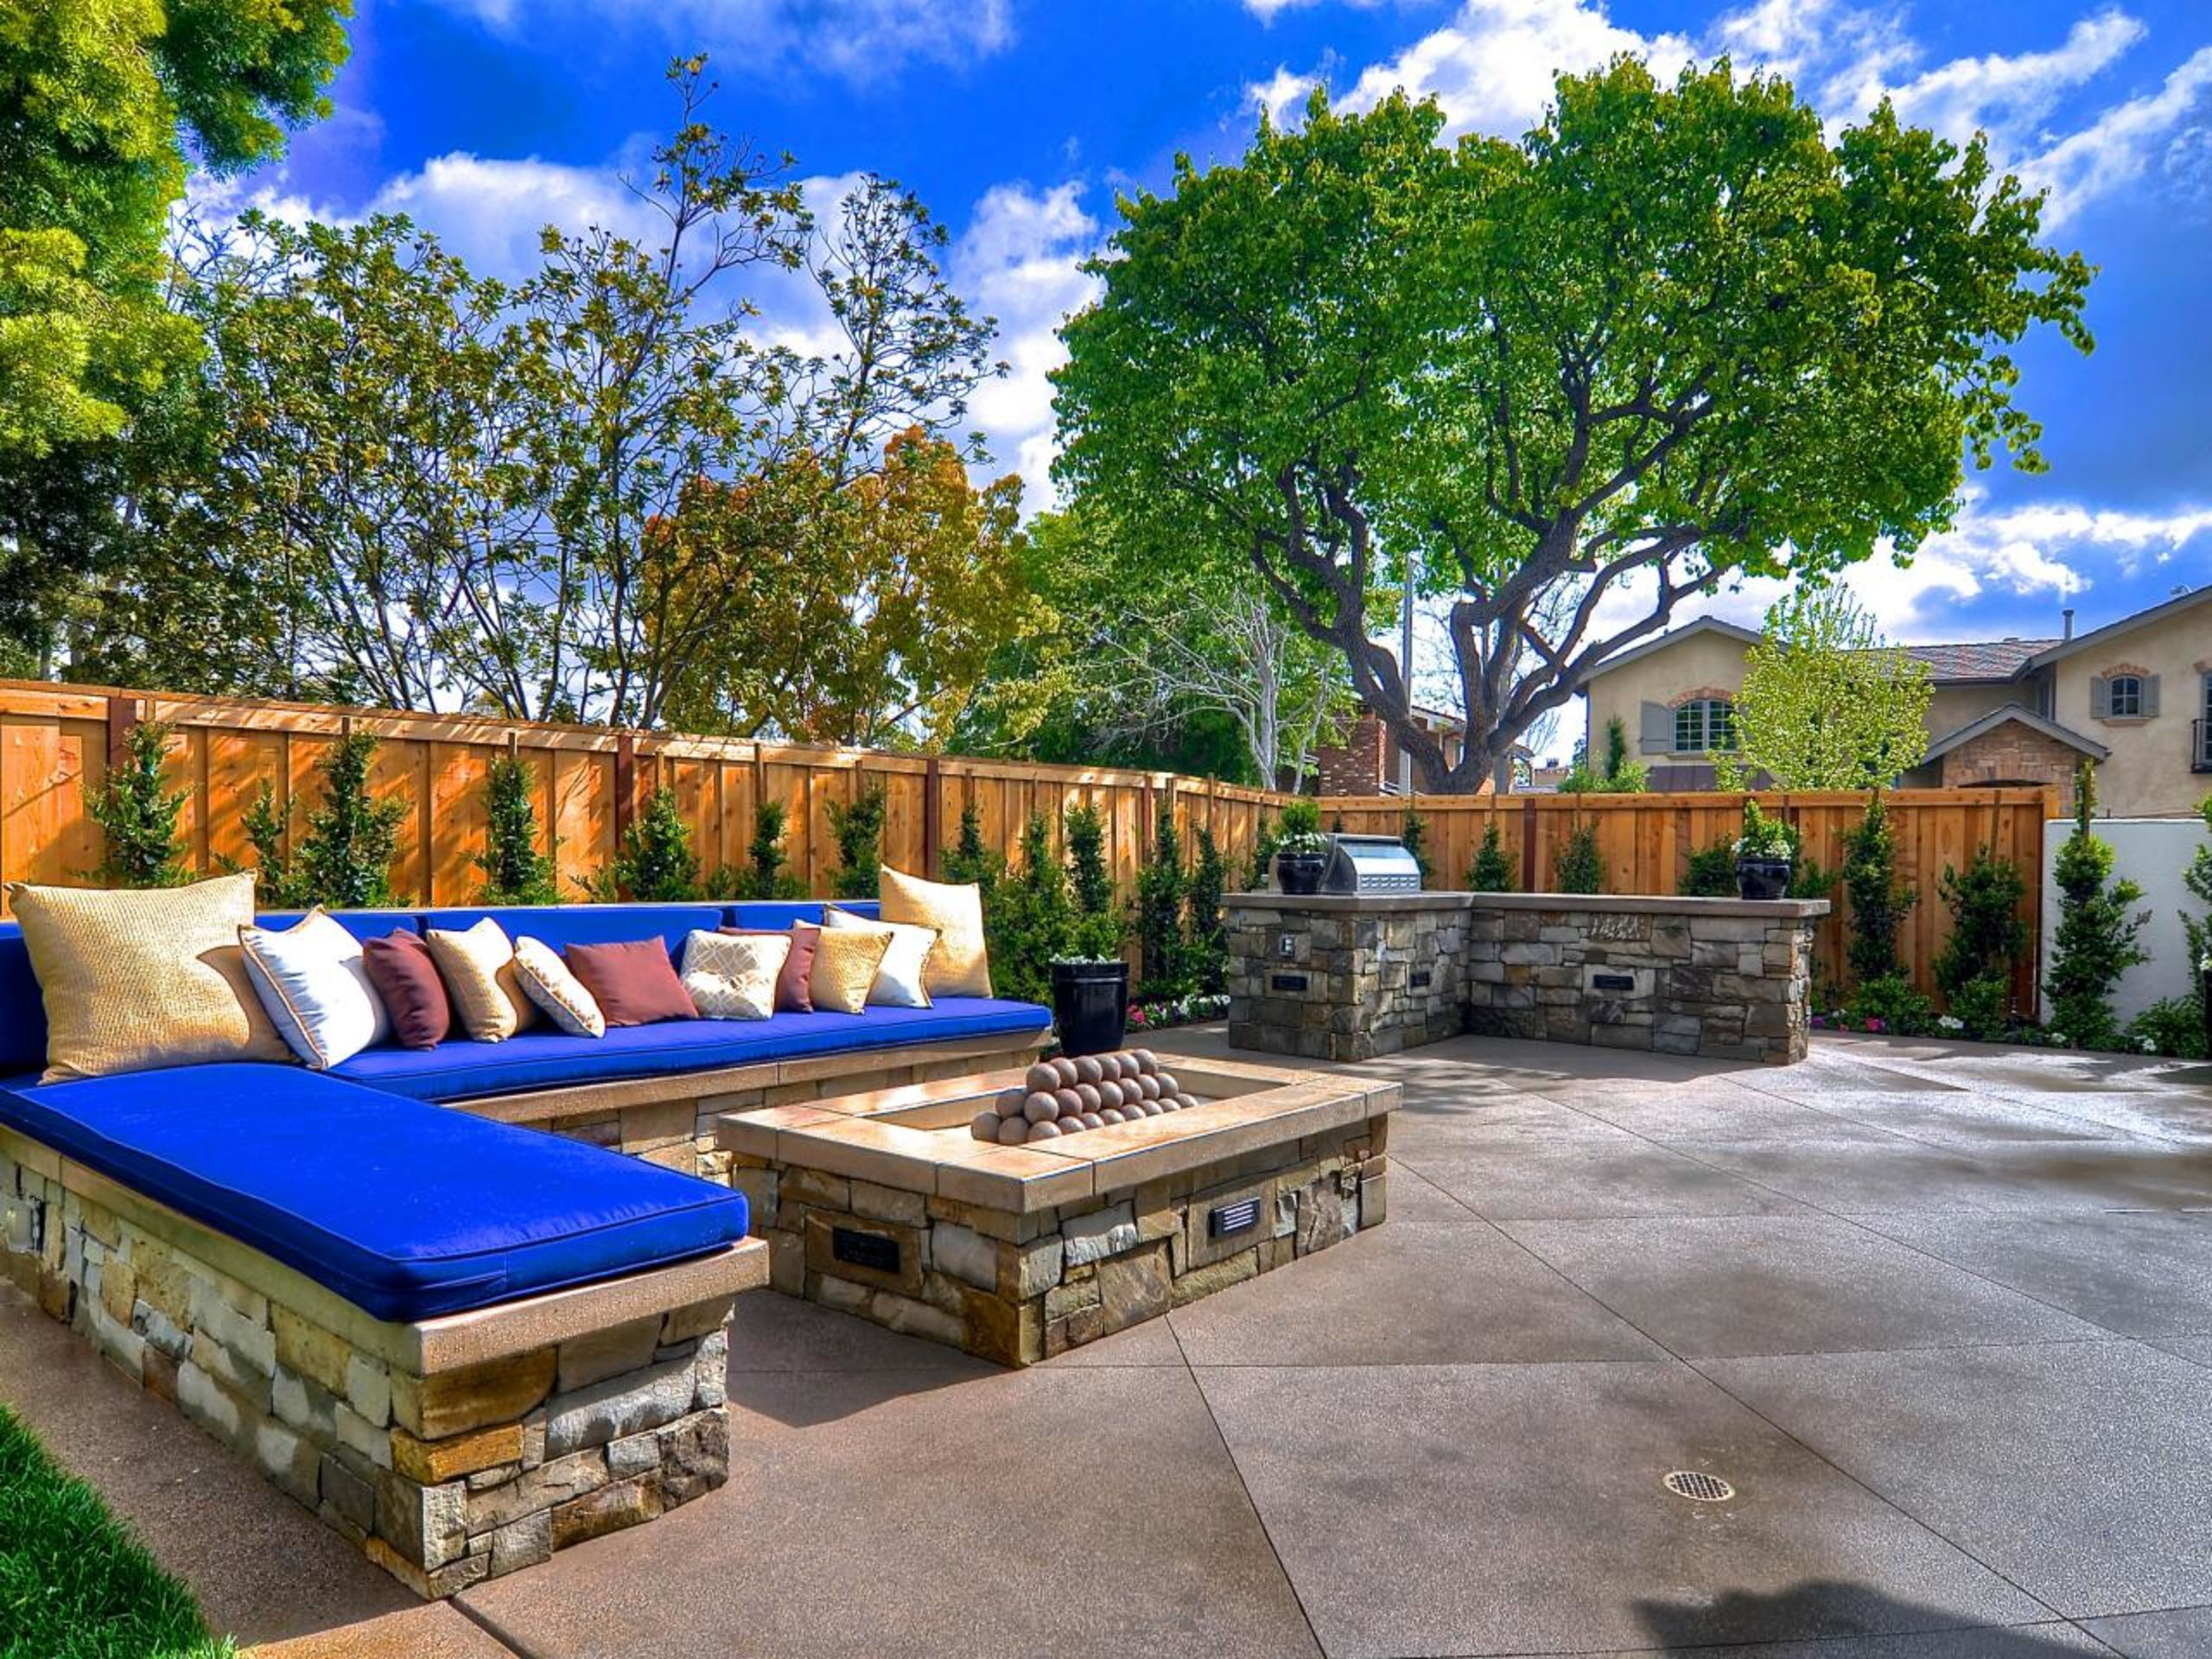 Find a Home with a Backyard Oasis to Vacation in Place